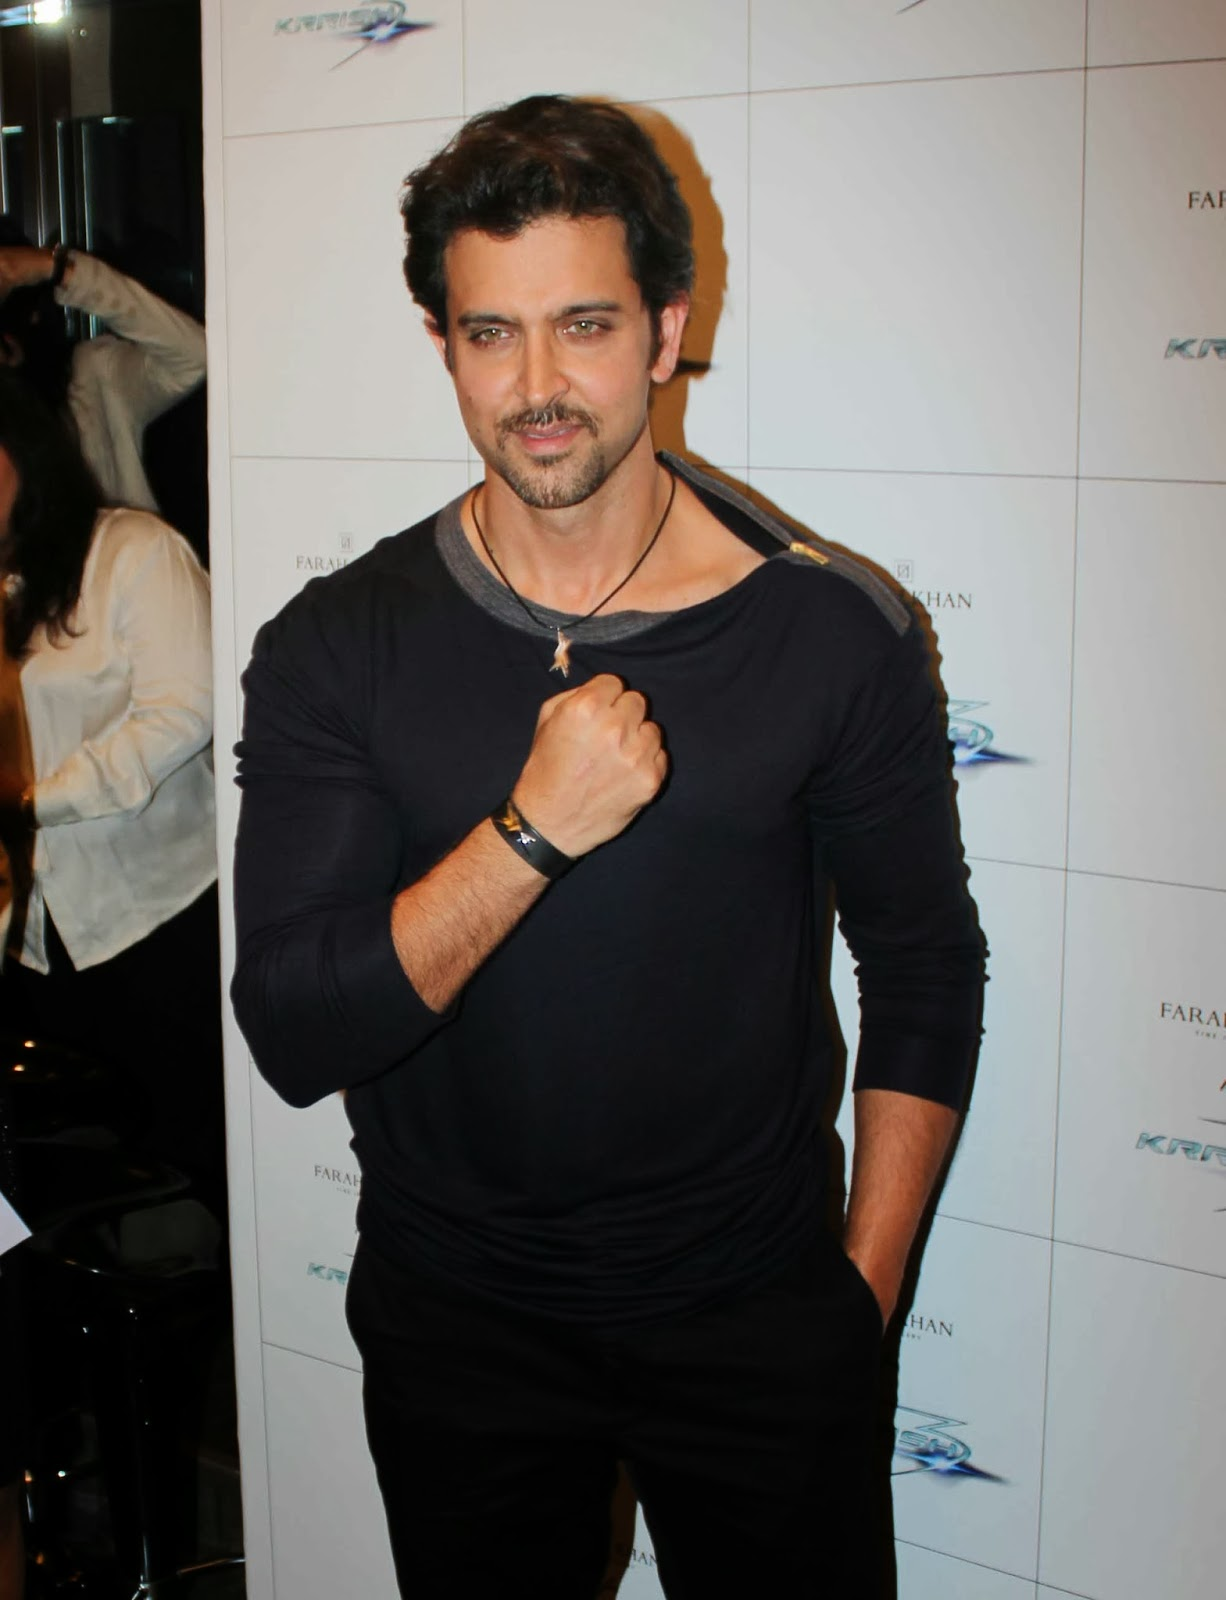 filmee club: hrithik roshan unveils farah khan ali's krrish 3 collection